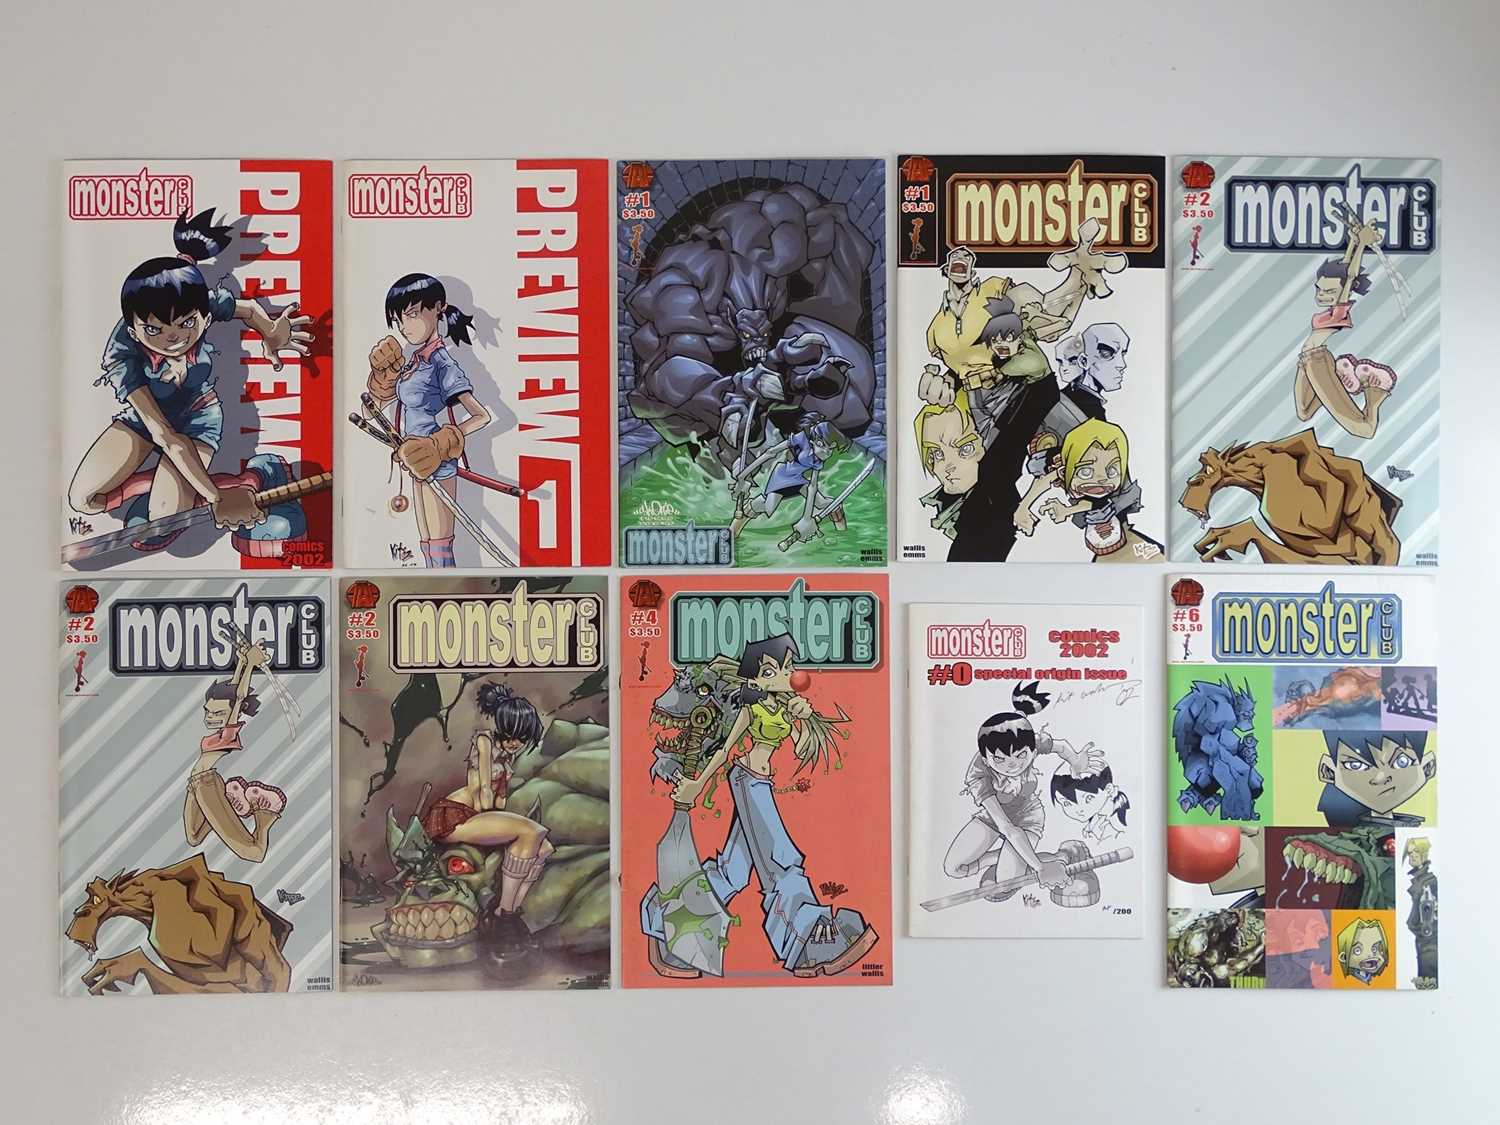 MONSTER CLUB LOT - (10 in Lot) - (2002 - DC) - First Printings - Includes MONSTER CLUB #0 - Origin